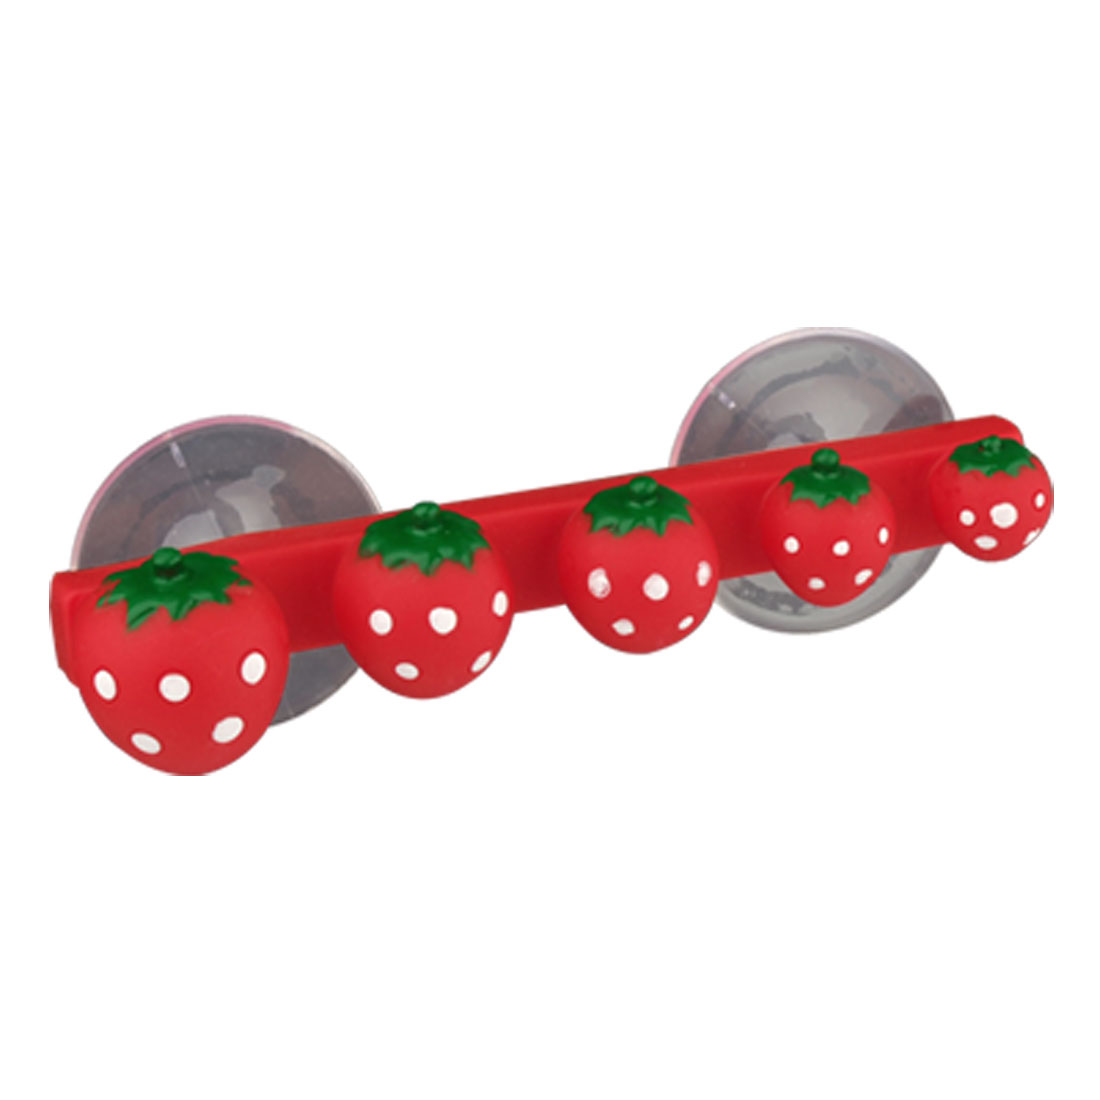 Plastic Toothbrush Holder w Suction Cups Strawberry Shaped Rack Bathroom Accessory